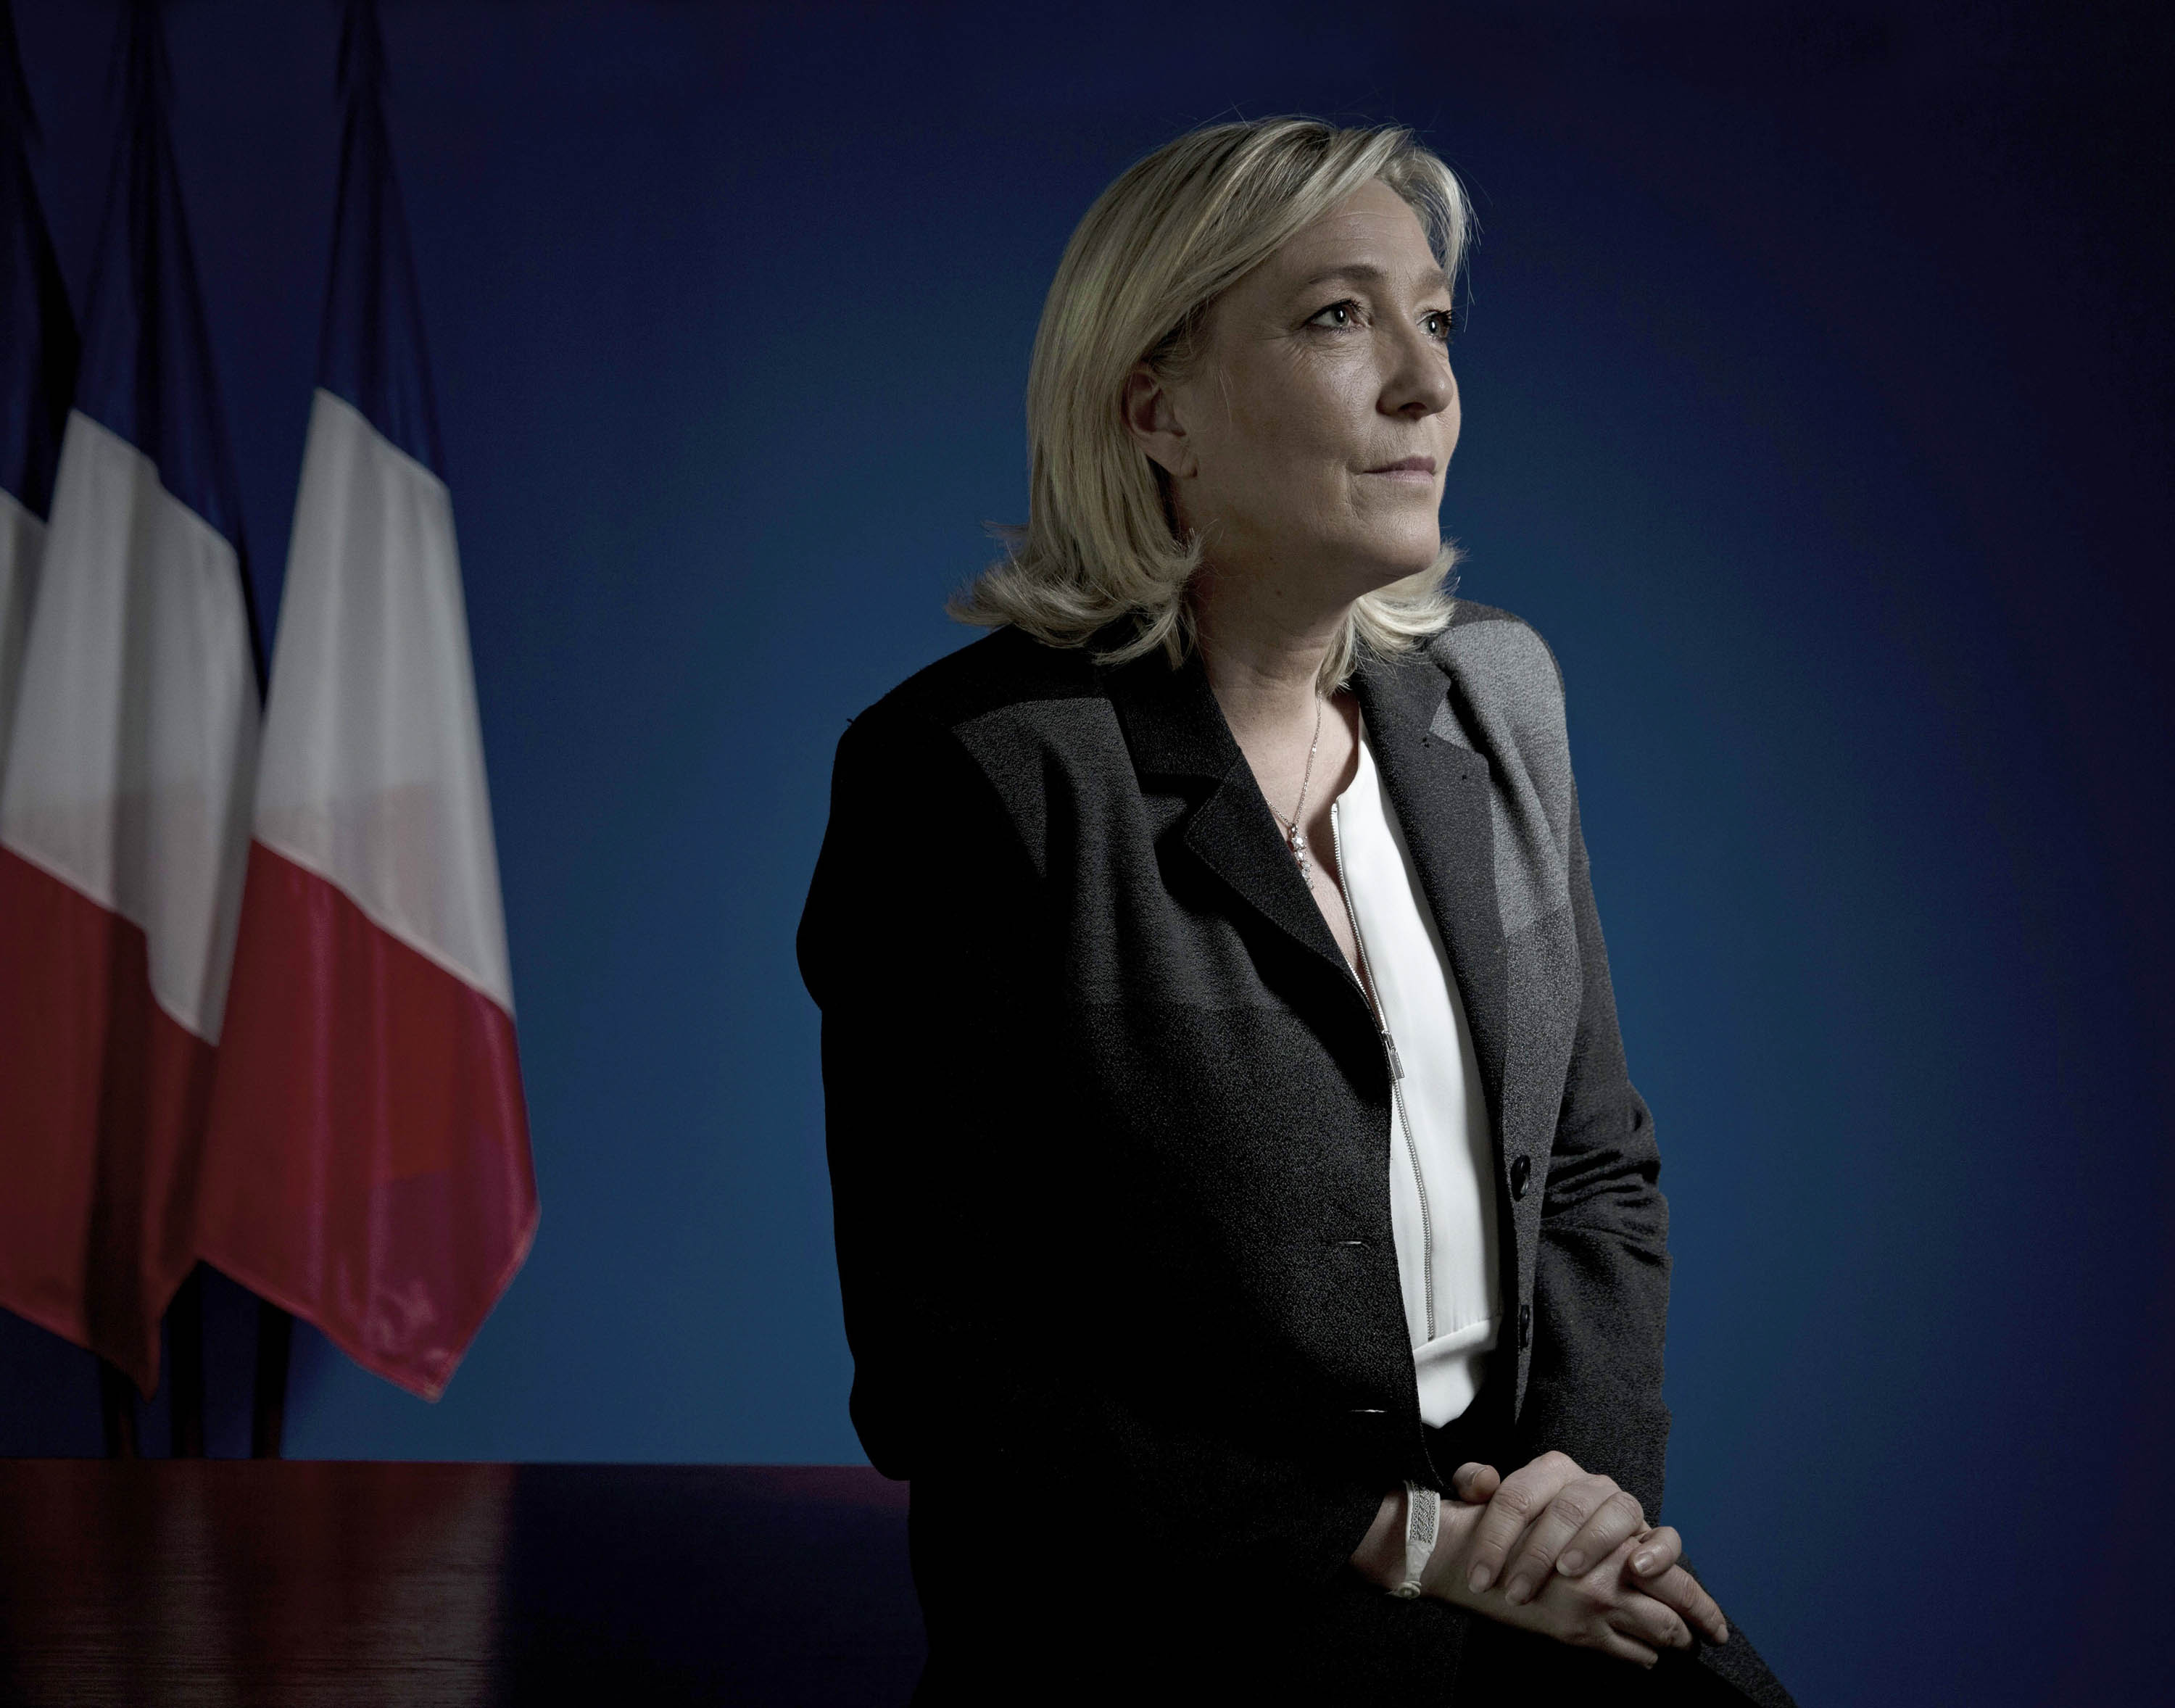 France's Marine Le Pen won big in May's European Union elections. Her next goal: dismantle the E.U. itself